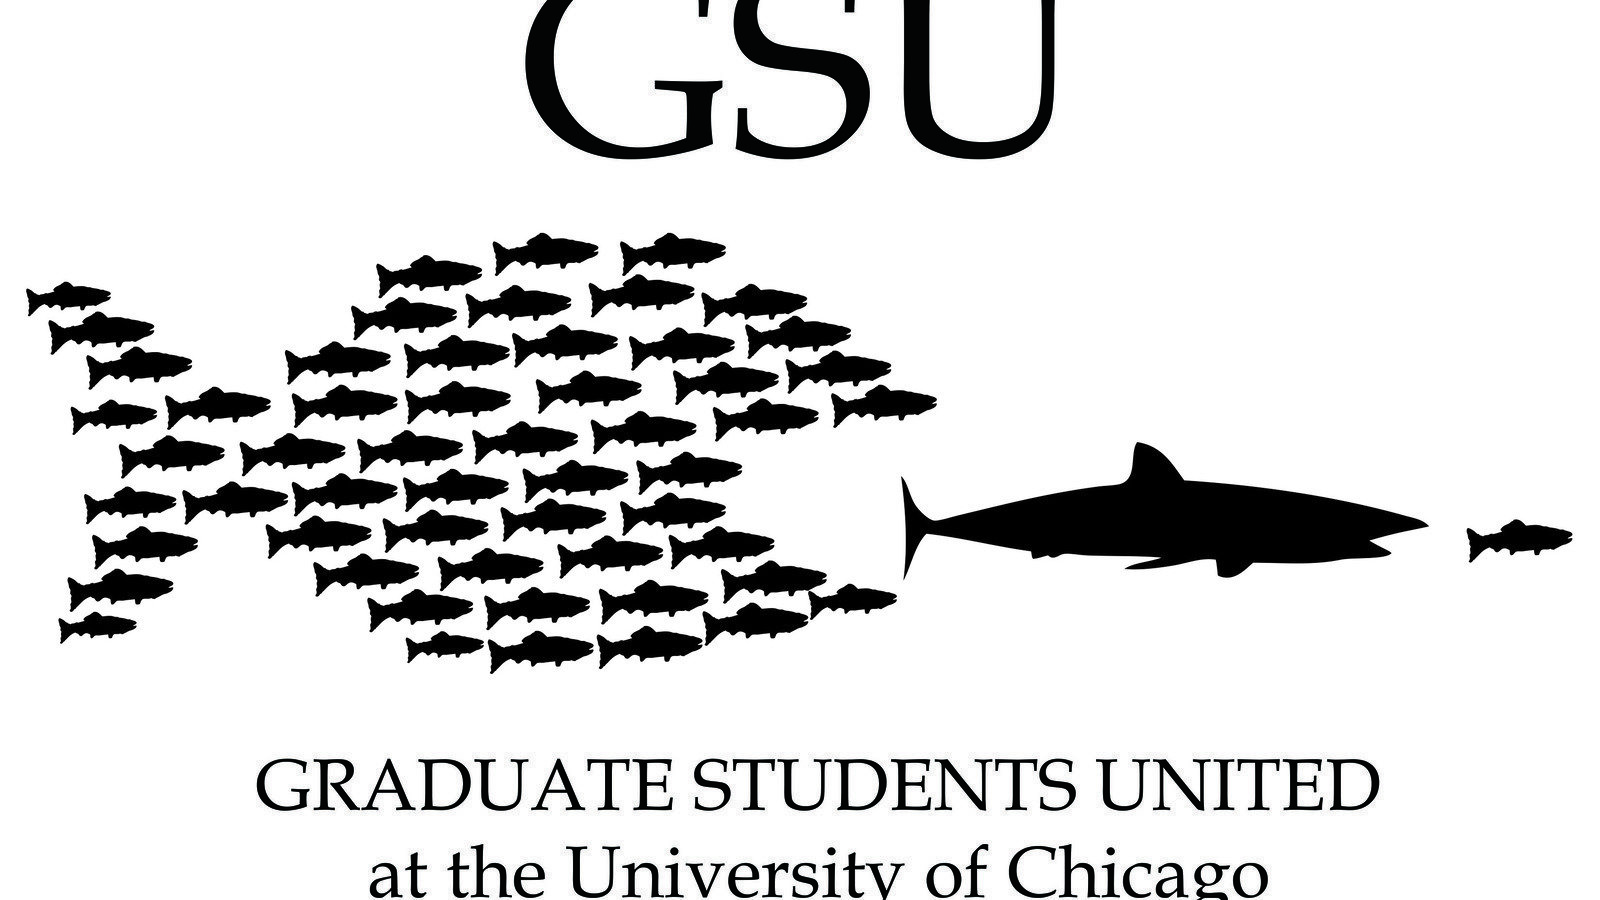 Petition · University of Chicago: Unfeesible! · Change.org